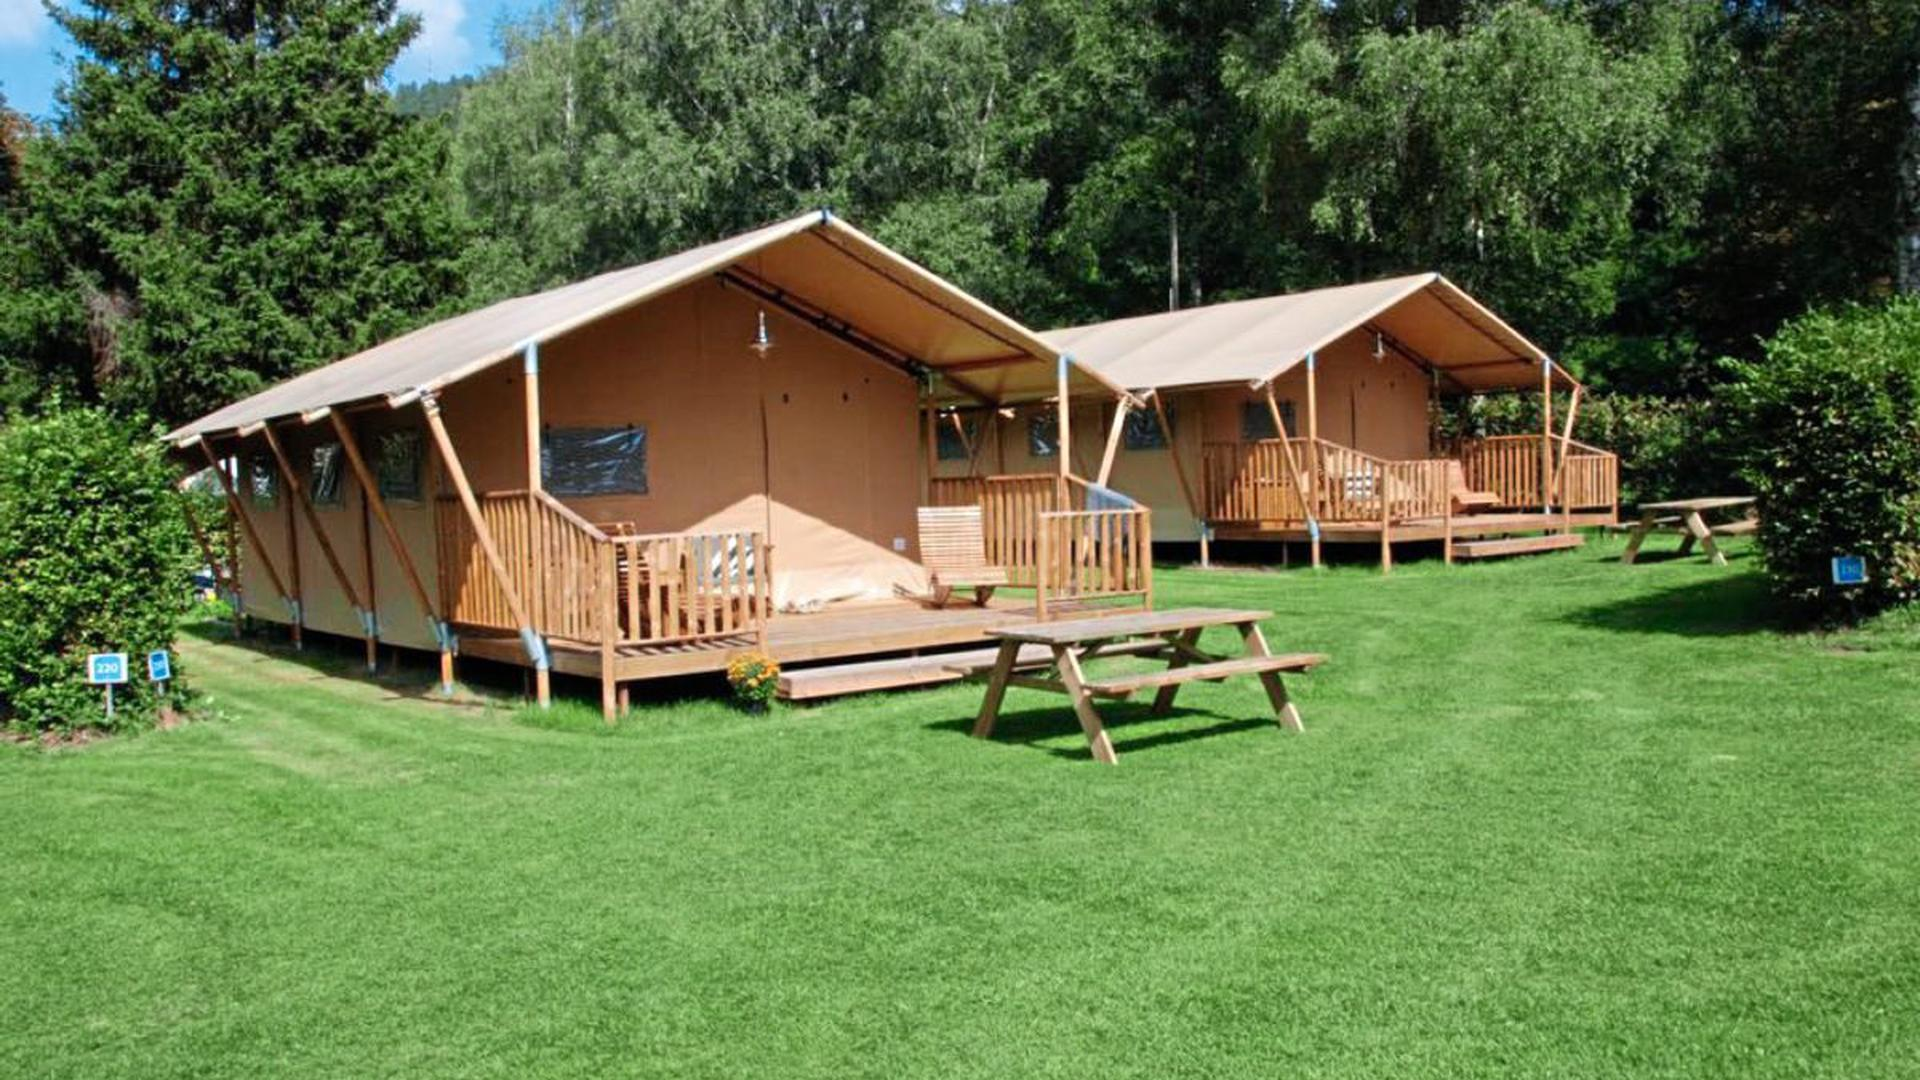 Glamping statt Camping in Bad Liebenzell.